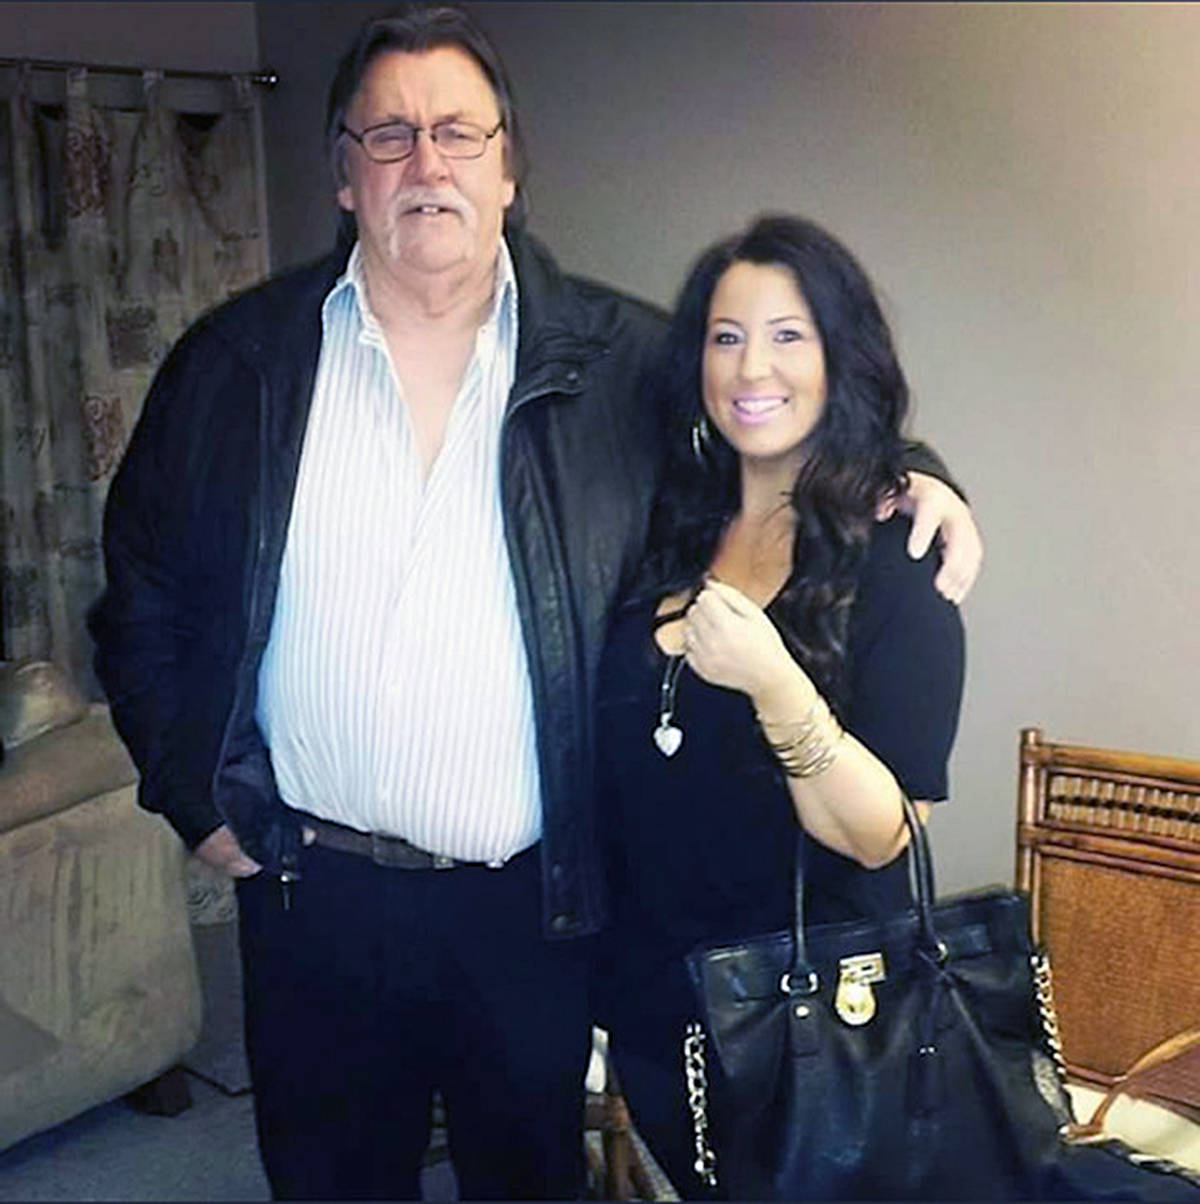 Jim Fitzpatrick and his daughter Leanna were left homeless by the June 6 fire that damaged the townhouse they were renting (courtesy Leanna Fitzpatrick)